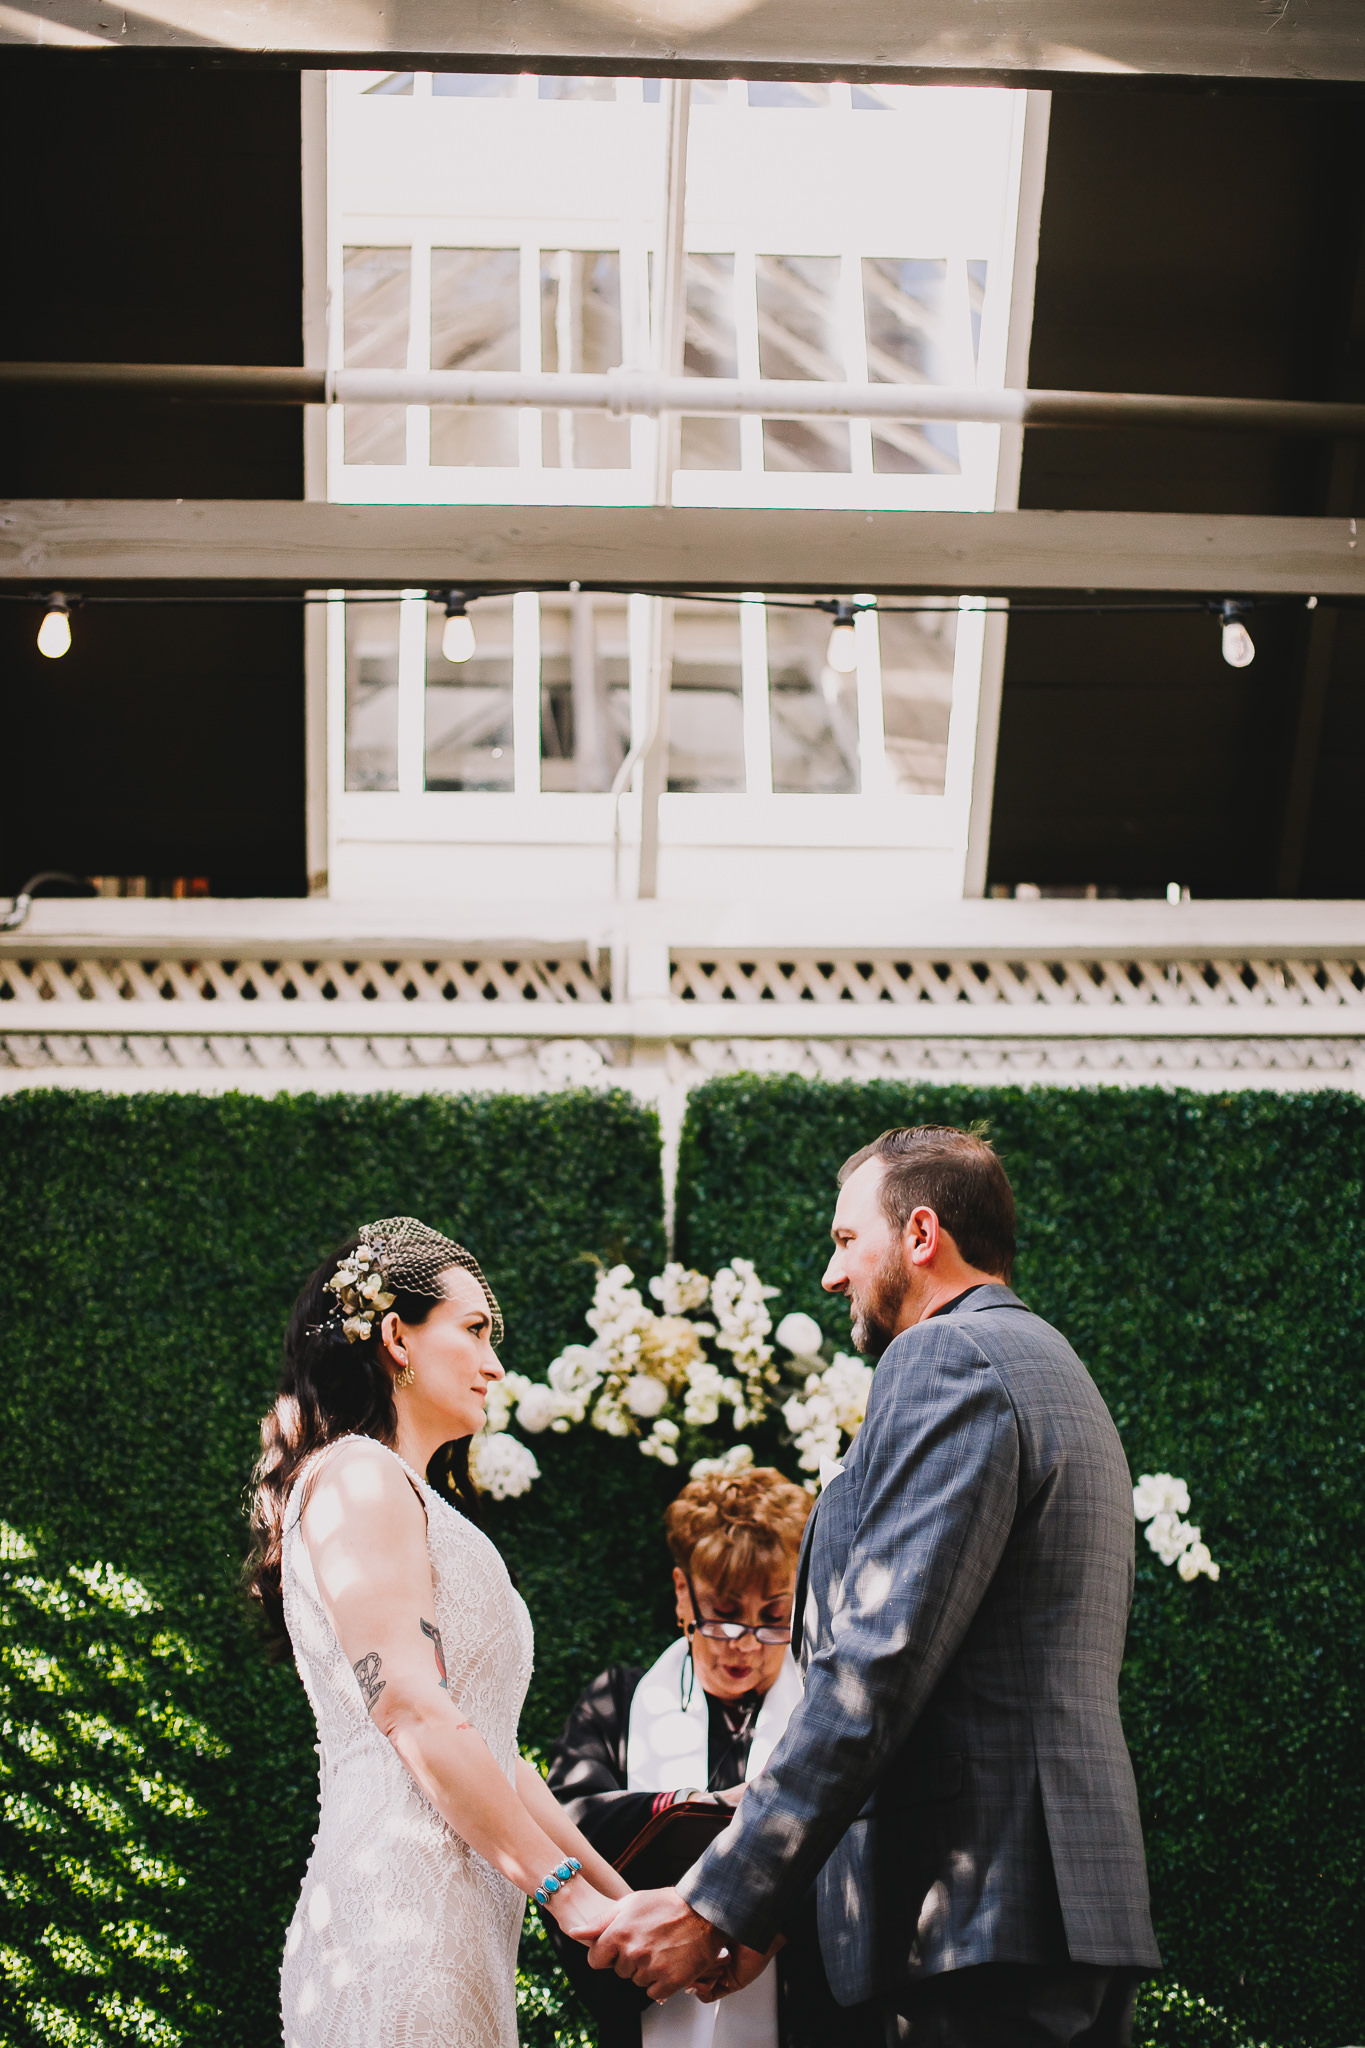 Archer Inspired Photography Sara and Aaron Winchester Mystery House NorCal San Jose California Wedding Photographer-154.jpg